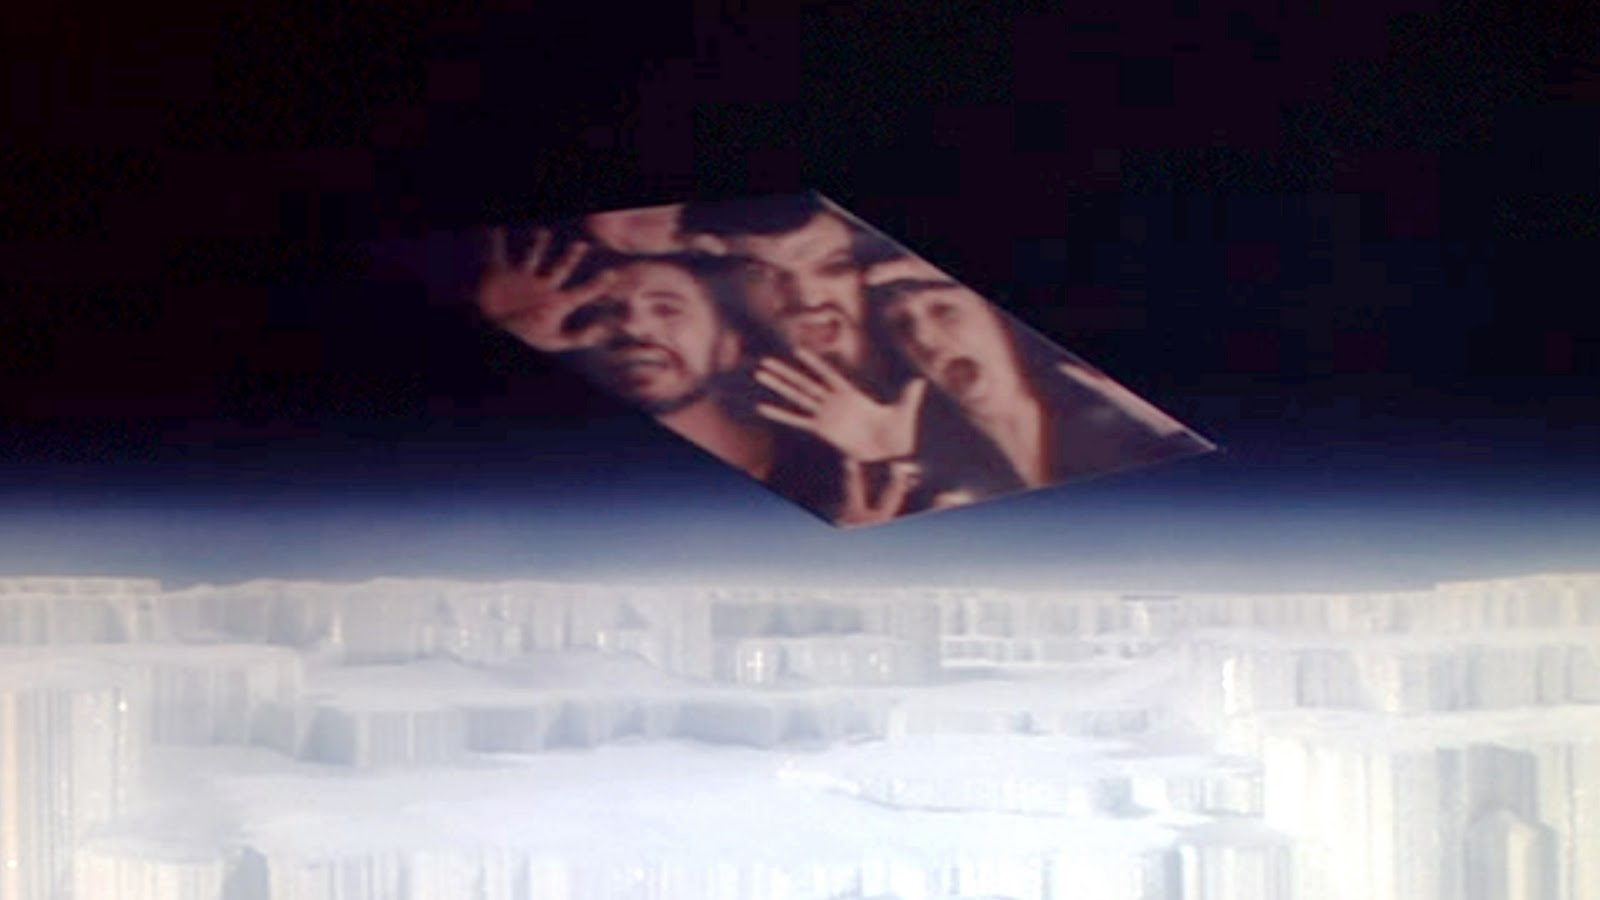 superman page of  the movie superman directed by richard donner seen here trapped in the phantom zone from left terence stamp as general zod jack o halloran as non and